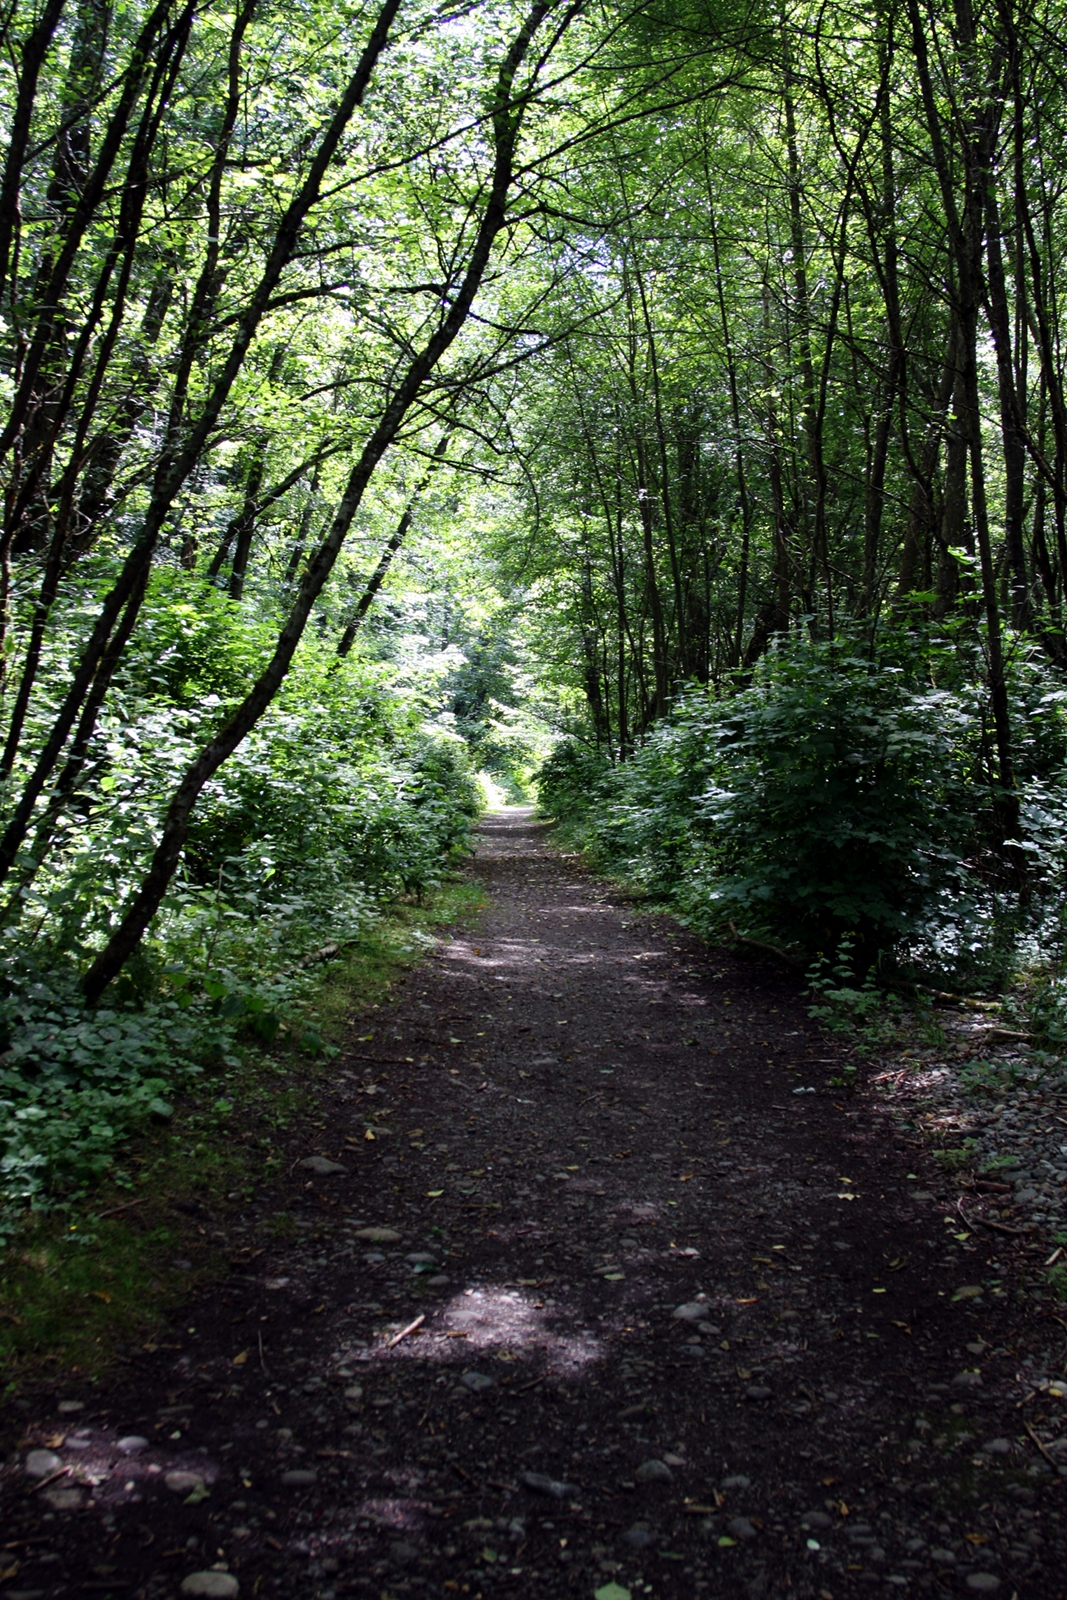 Swan Creek is a quiet getaway for anyone wanting a little piece of nature in the city.